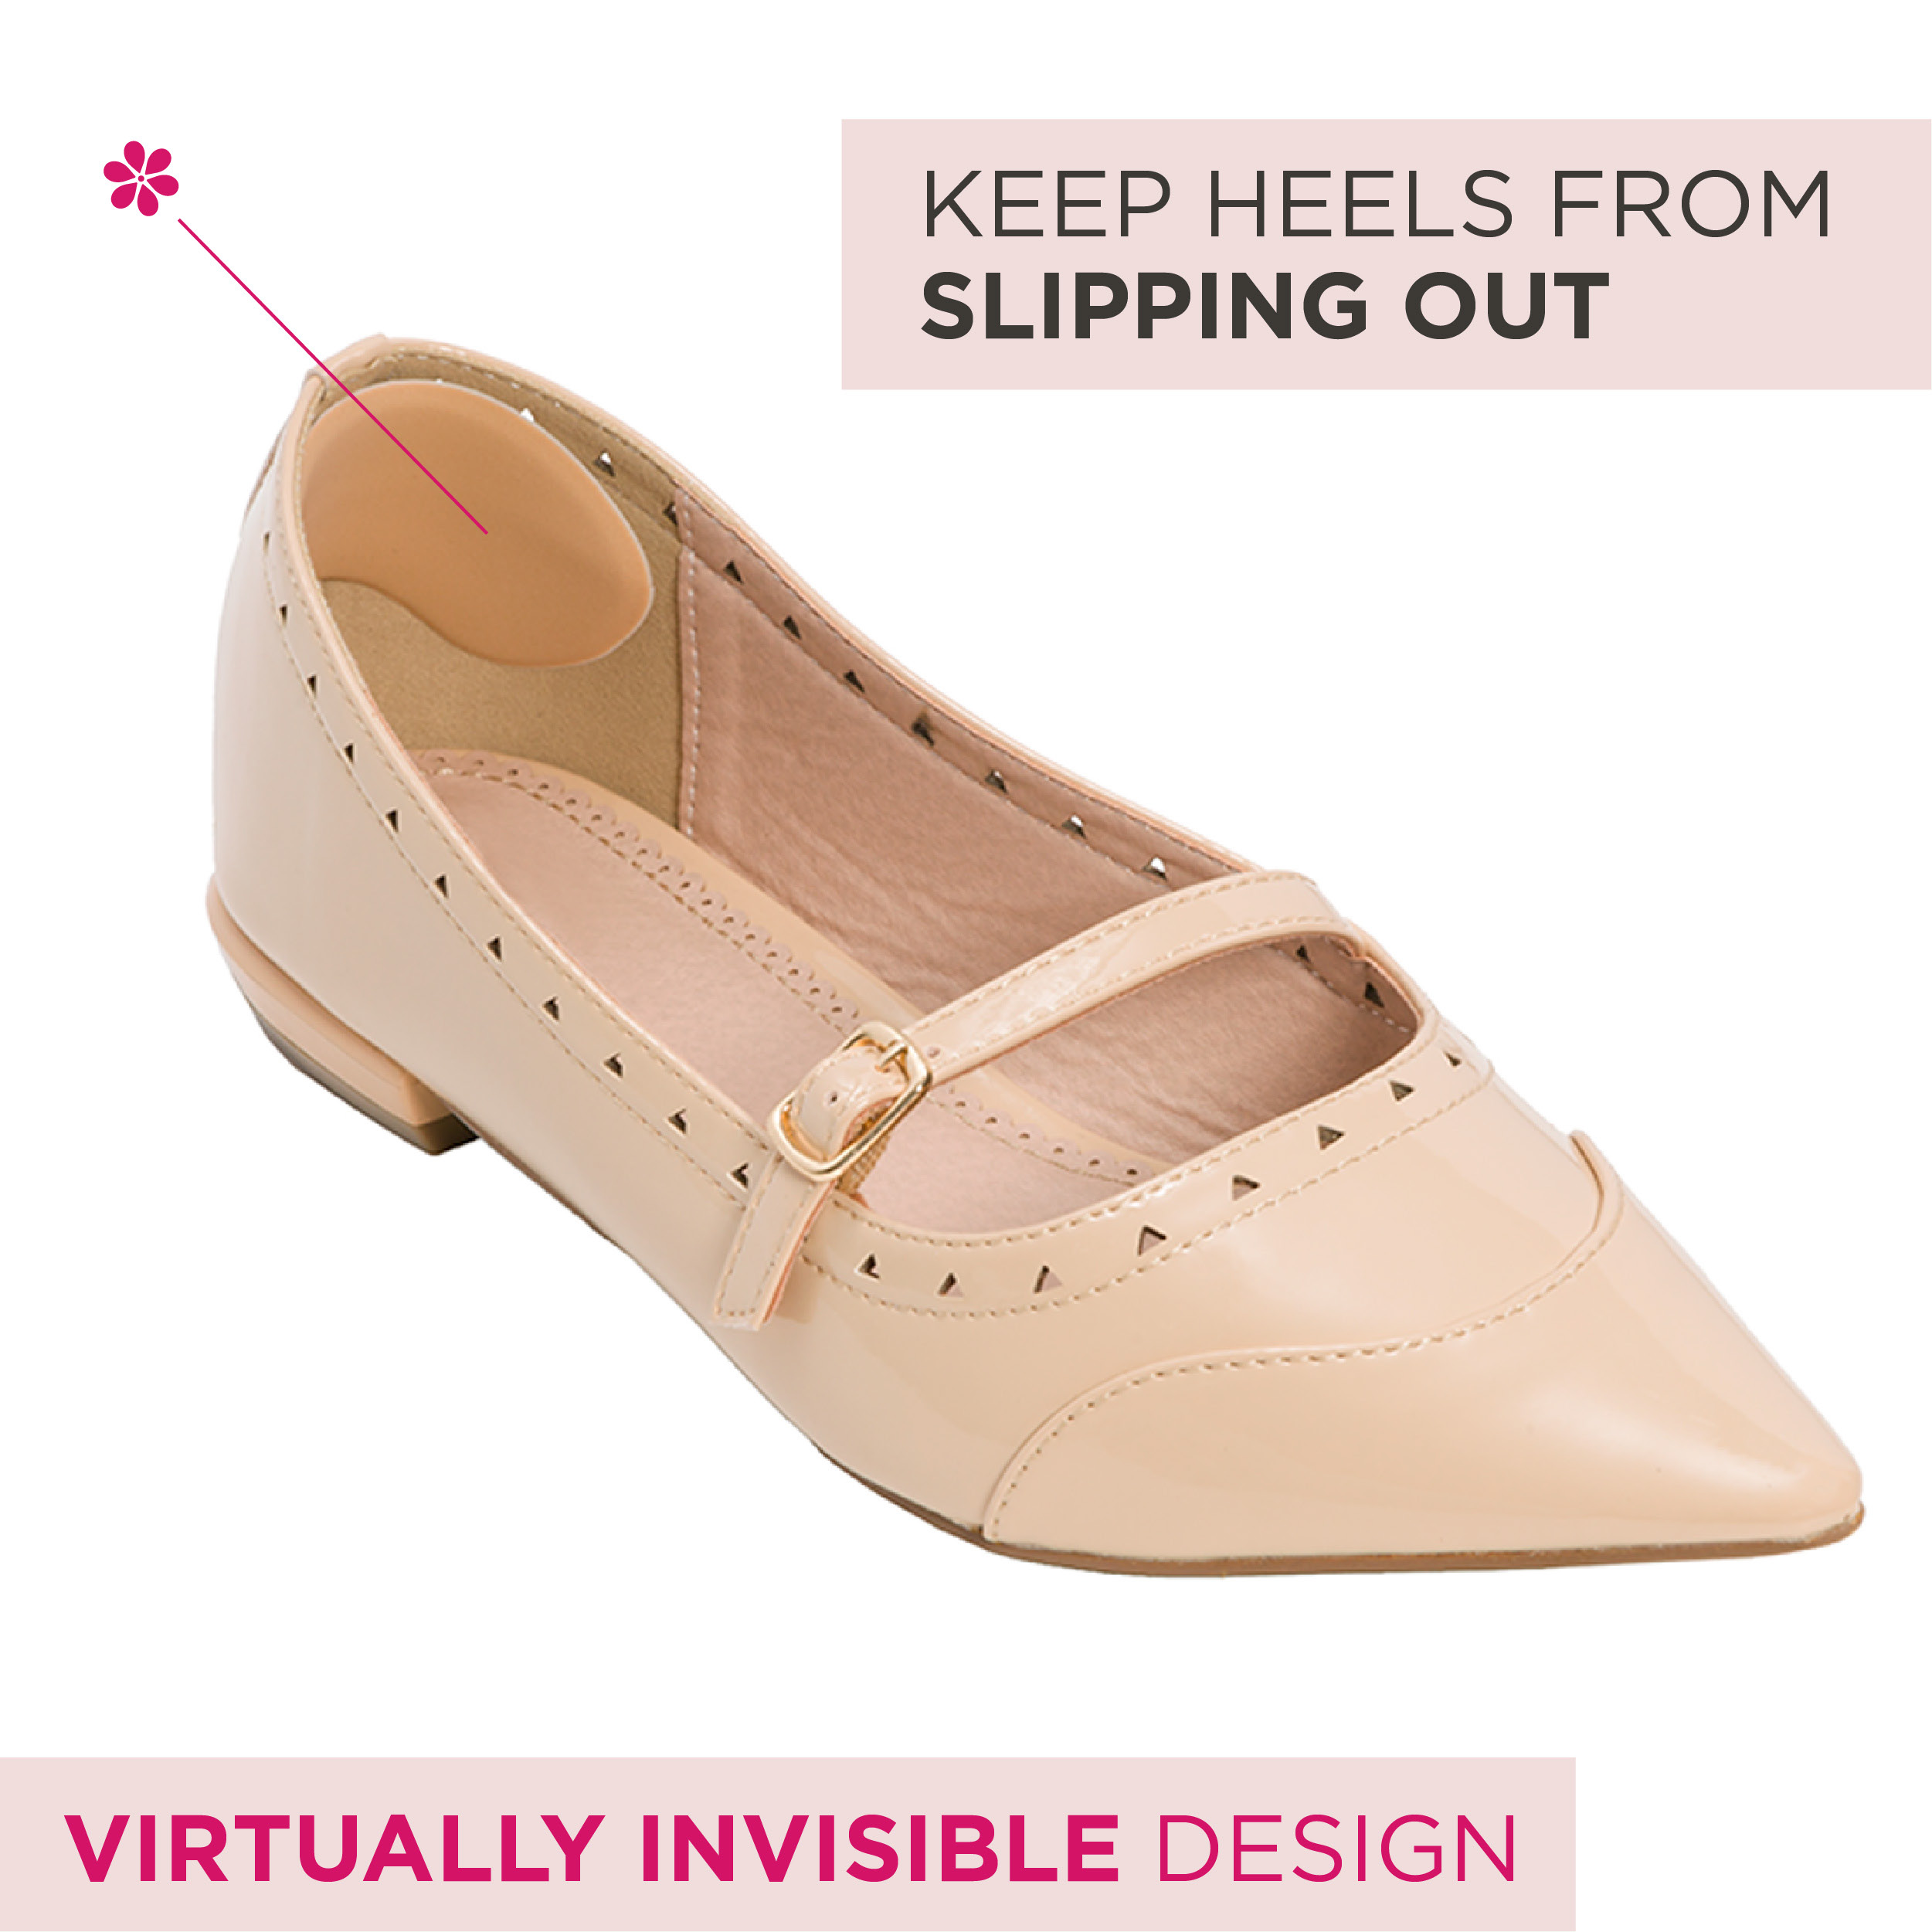 Fancy Feet Back Of Heel Cushions One Pair Of Cushioned Heel Inserts To Prevent Rubbing And Blisters From Uncomfortable Shoes Khaki